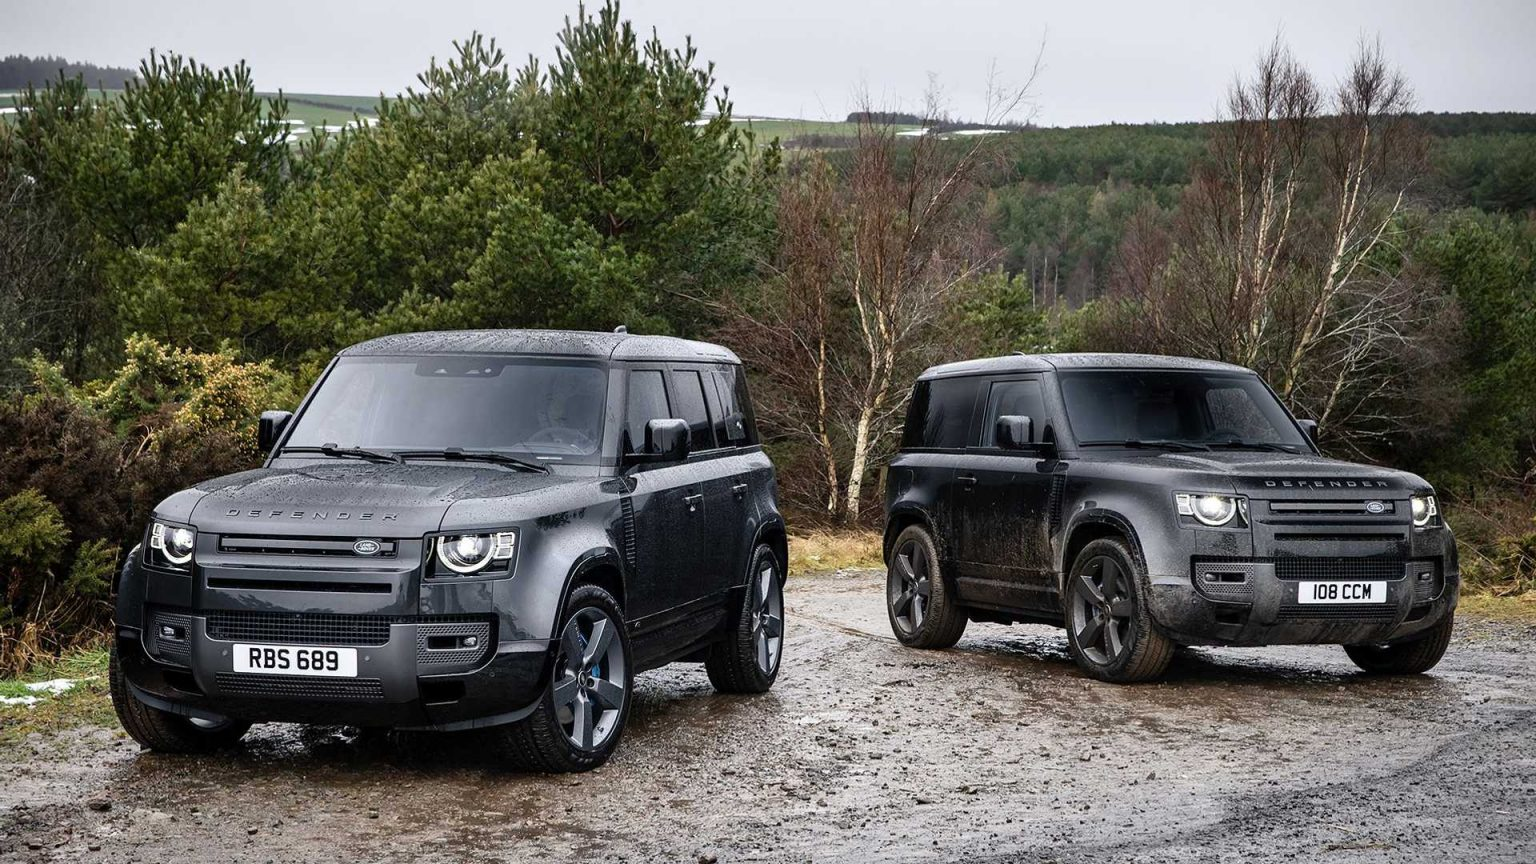 2022 Land Rover Defender V8 Debuts With 518 HP (386 kW)